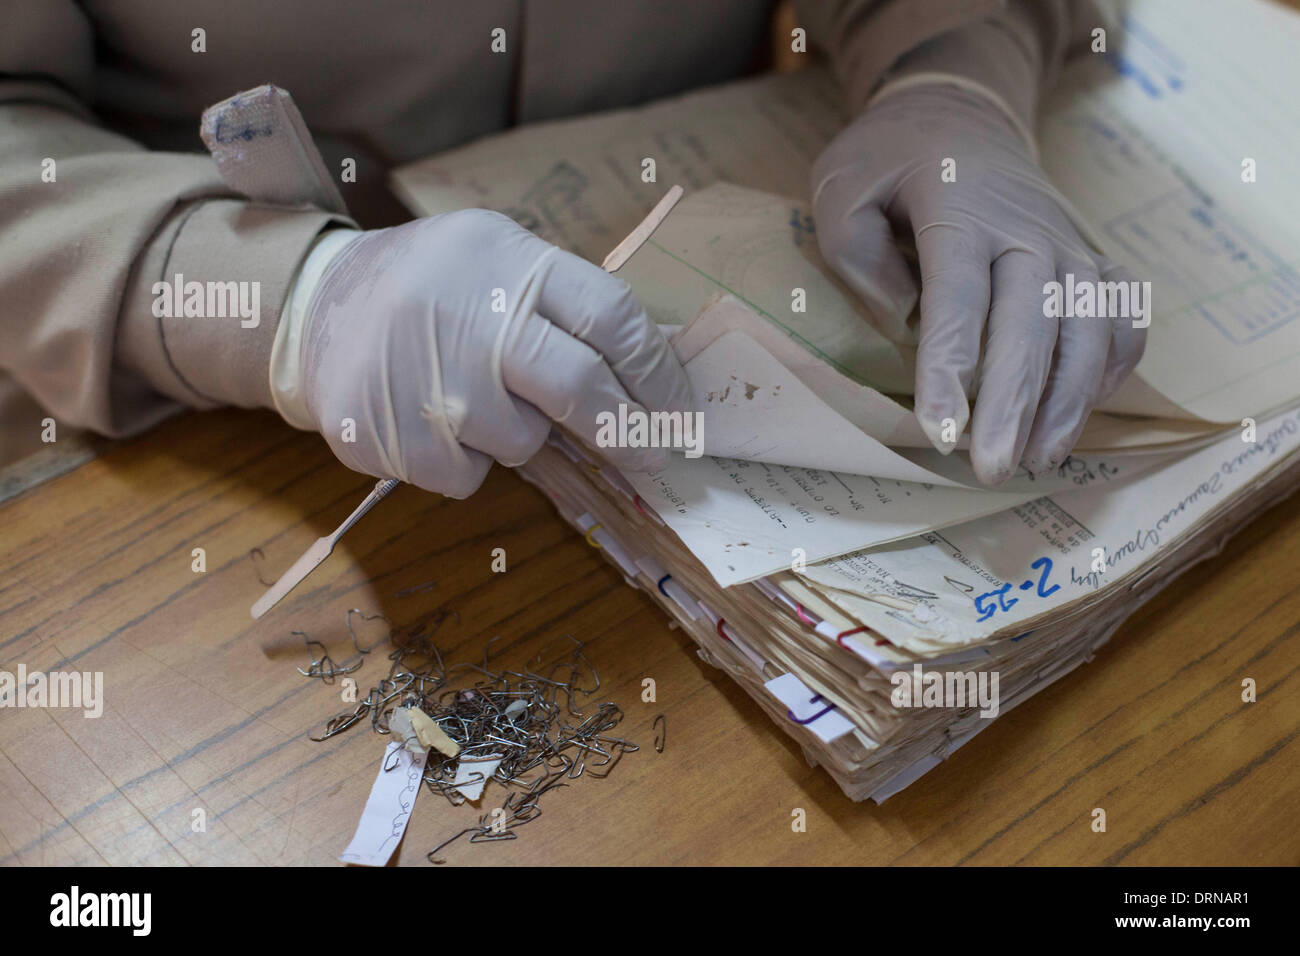 (140130) -- GUATEMALA CITY, Jan. 30, 2014 (Xinhua) -- A worker checks documents at the Historical Archive of the Stock Photo